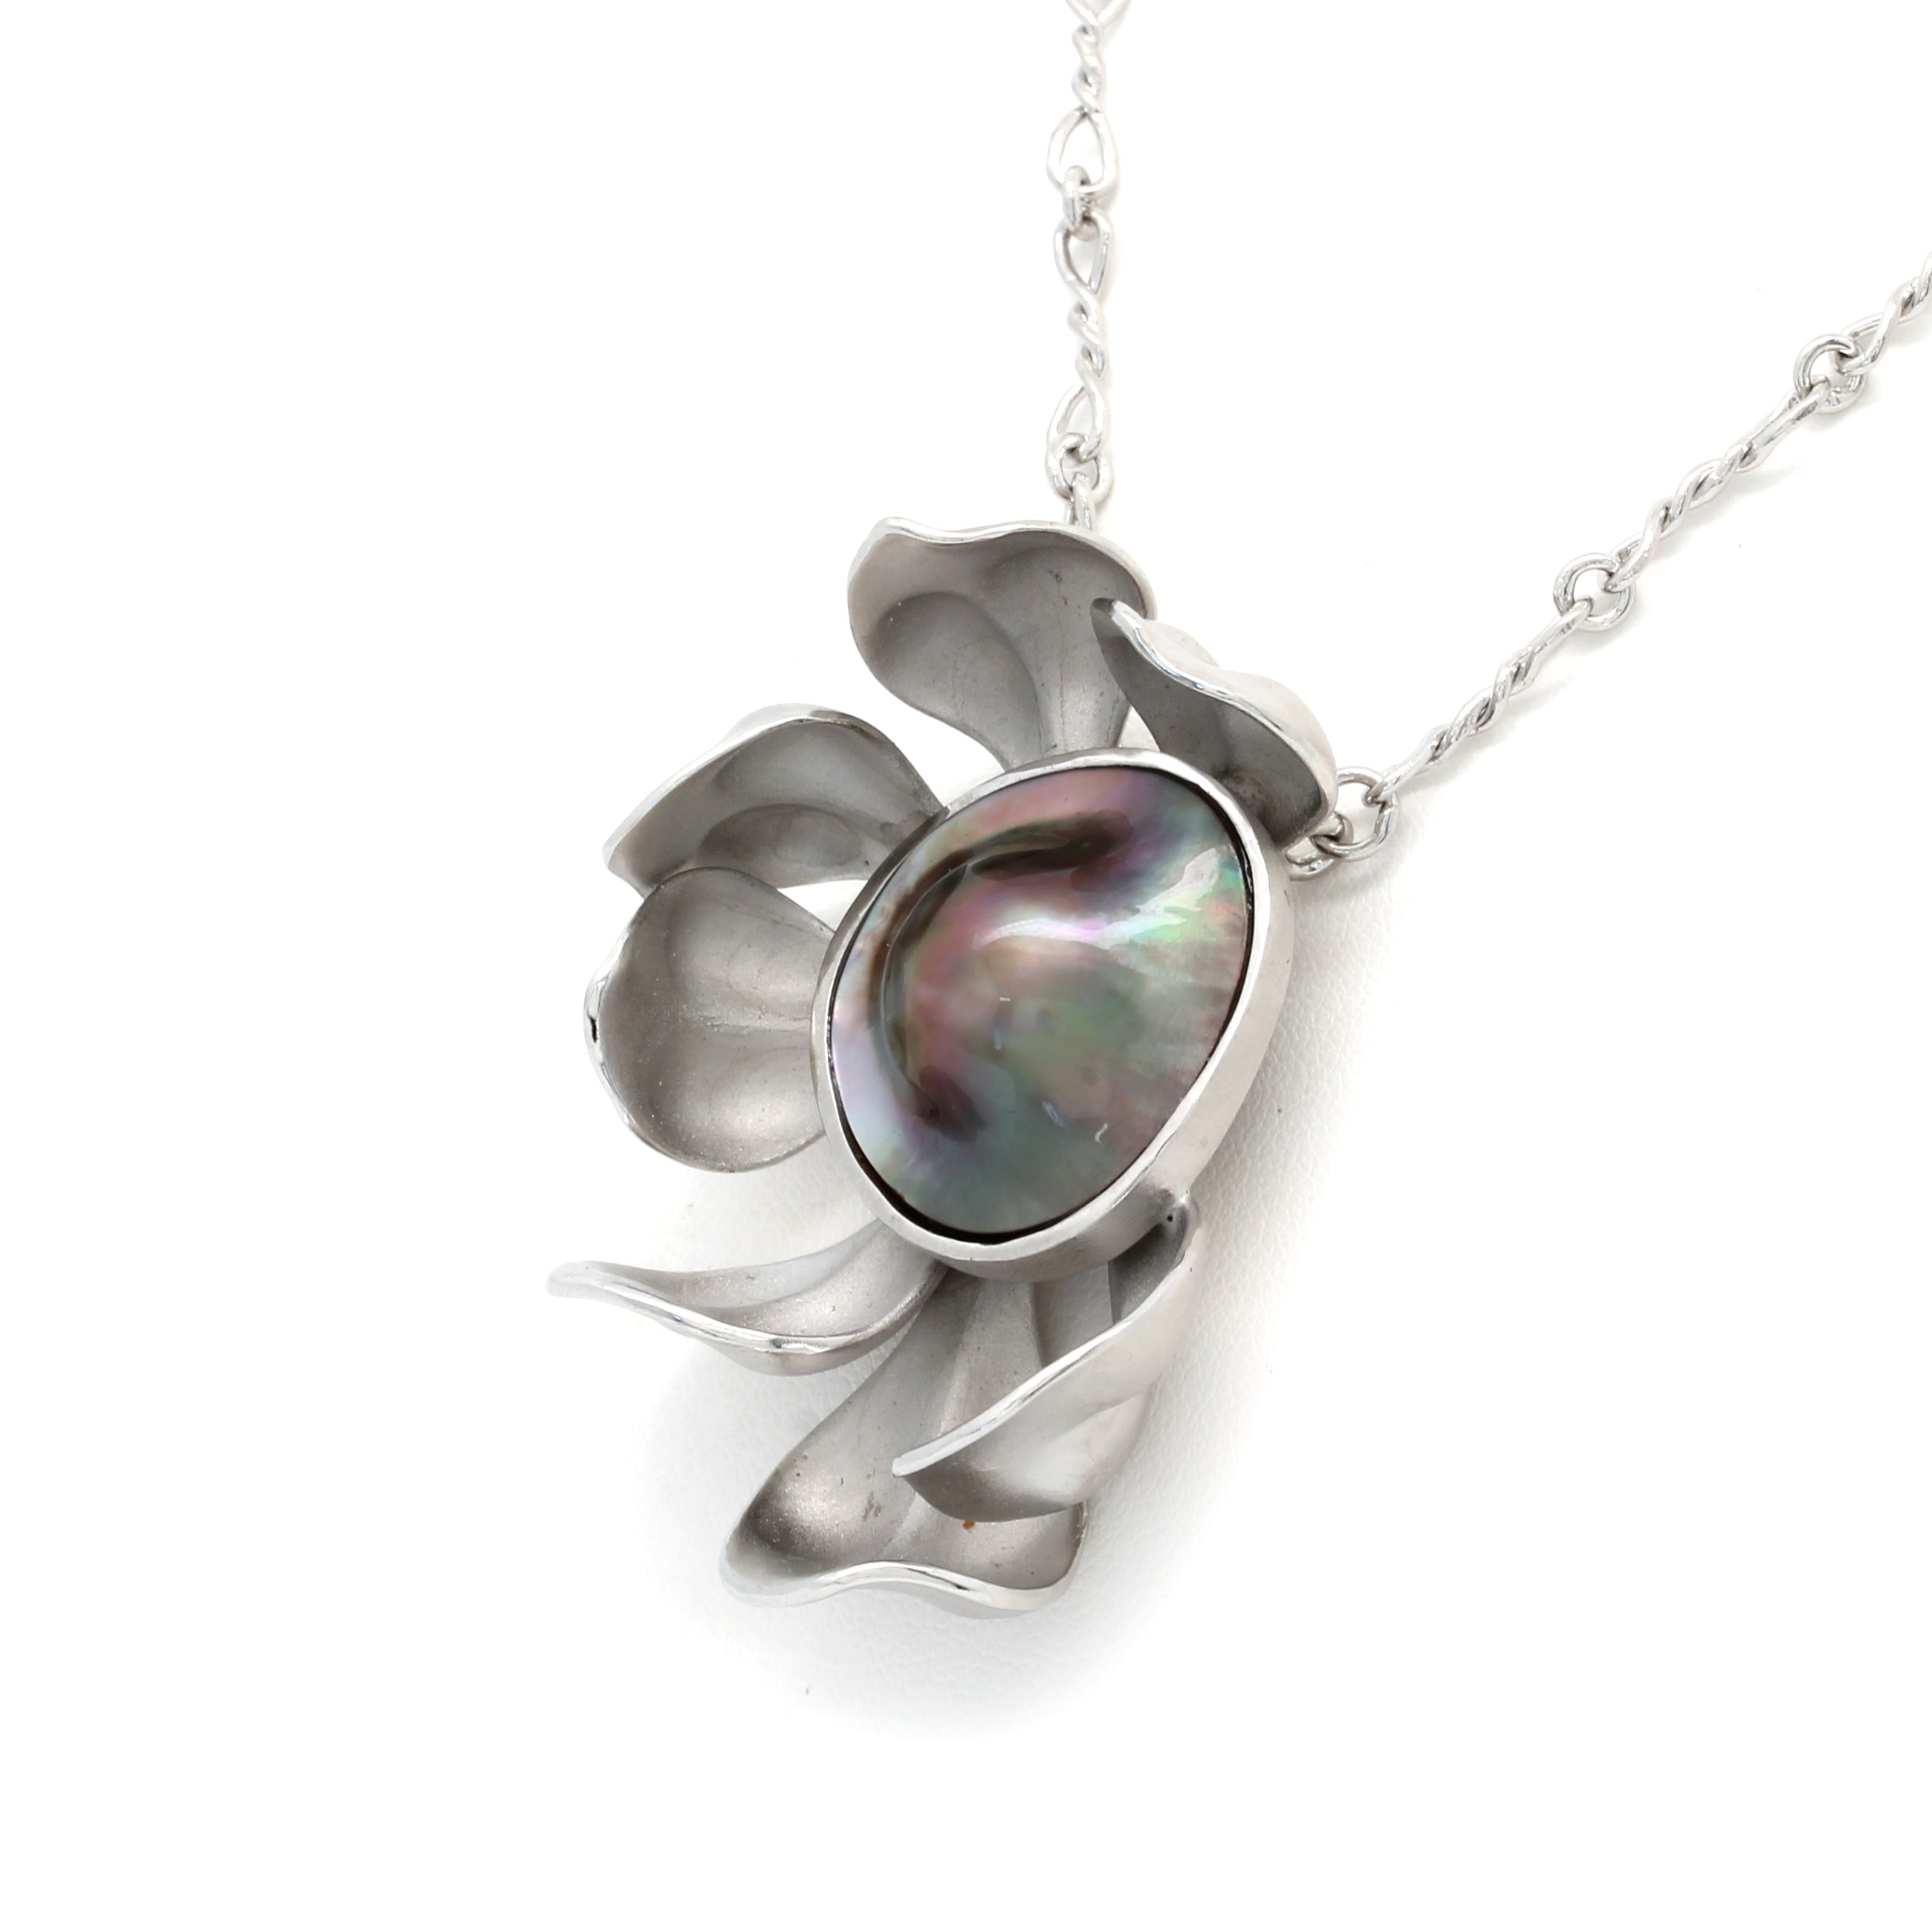 """Flor Mabe"" Silver Pendant and chain with Cortez Mabe Pearl by Héctor Salgado"